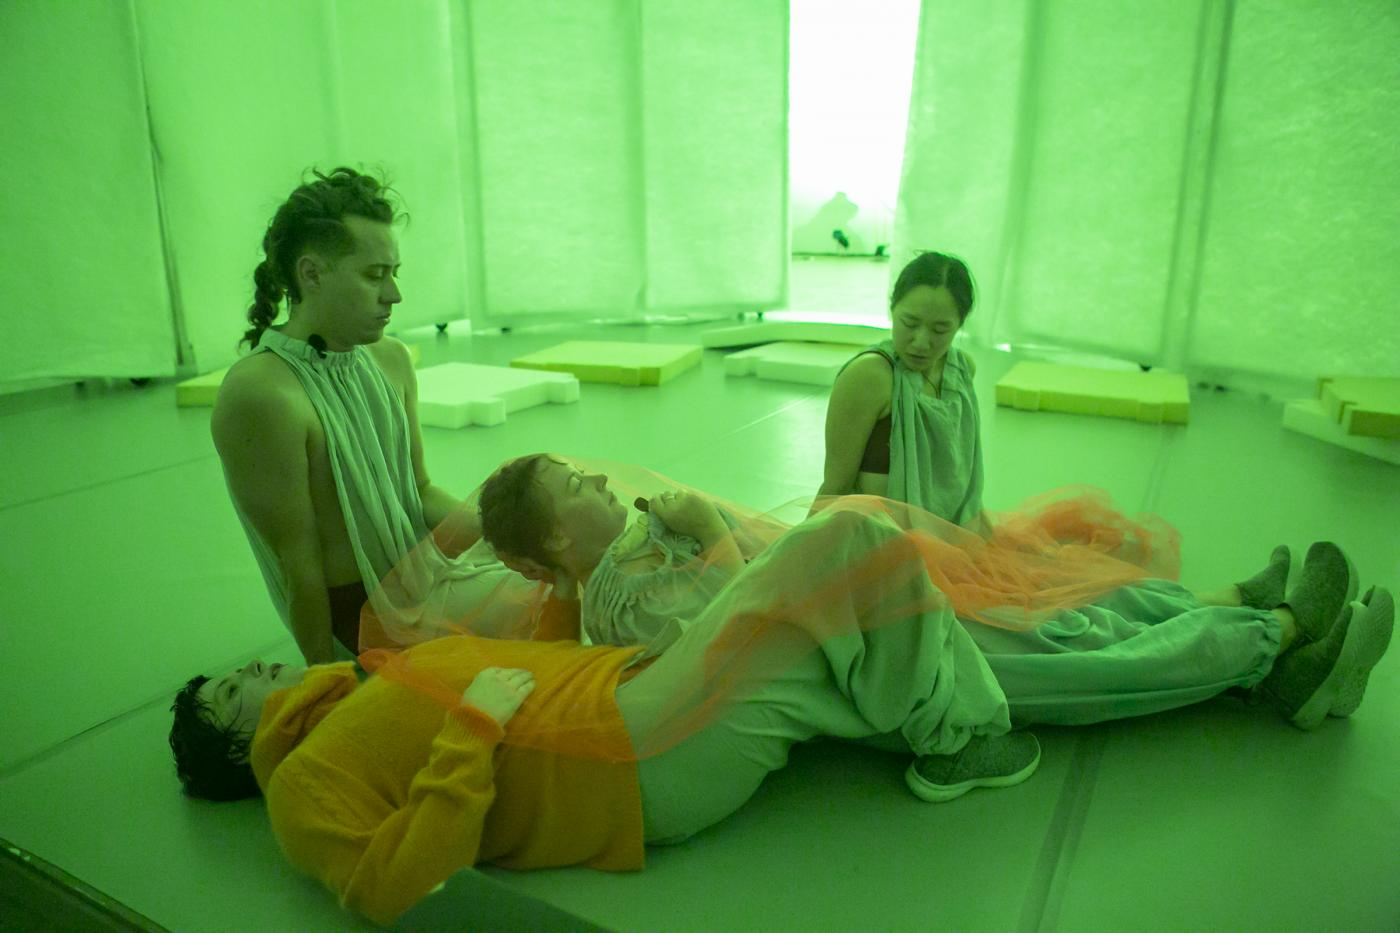 In a room lit by a neon green light, four dancers lay together.